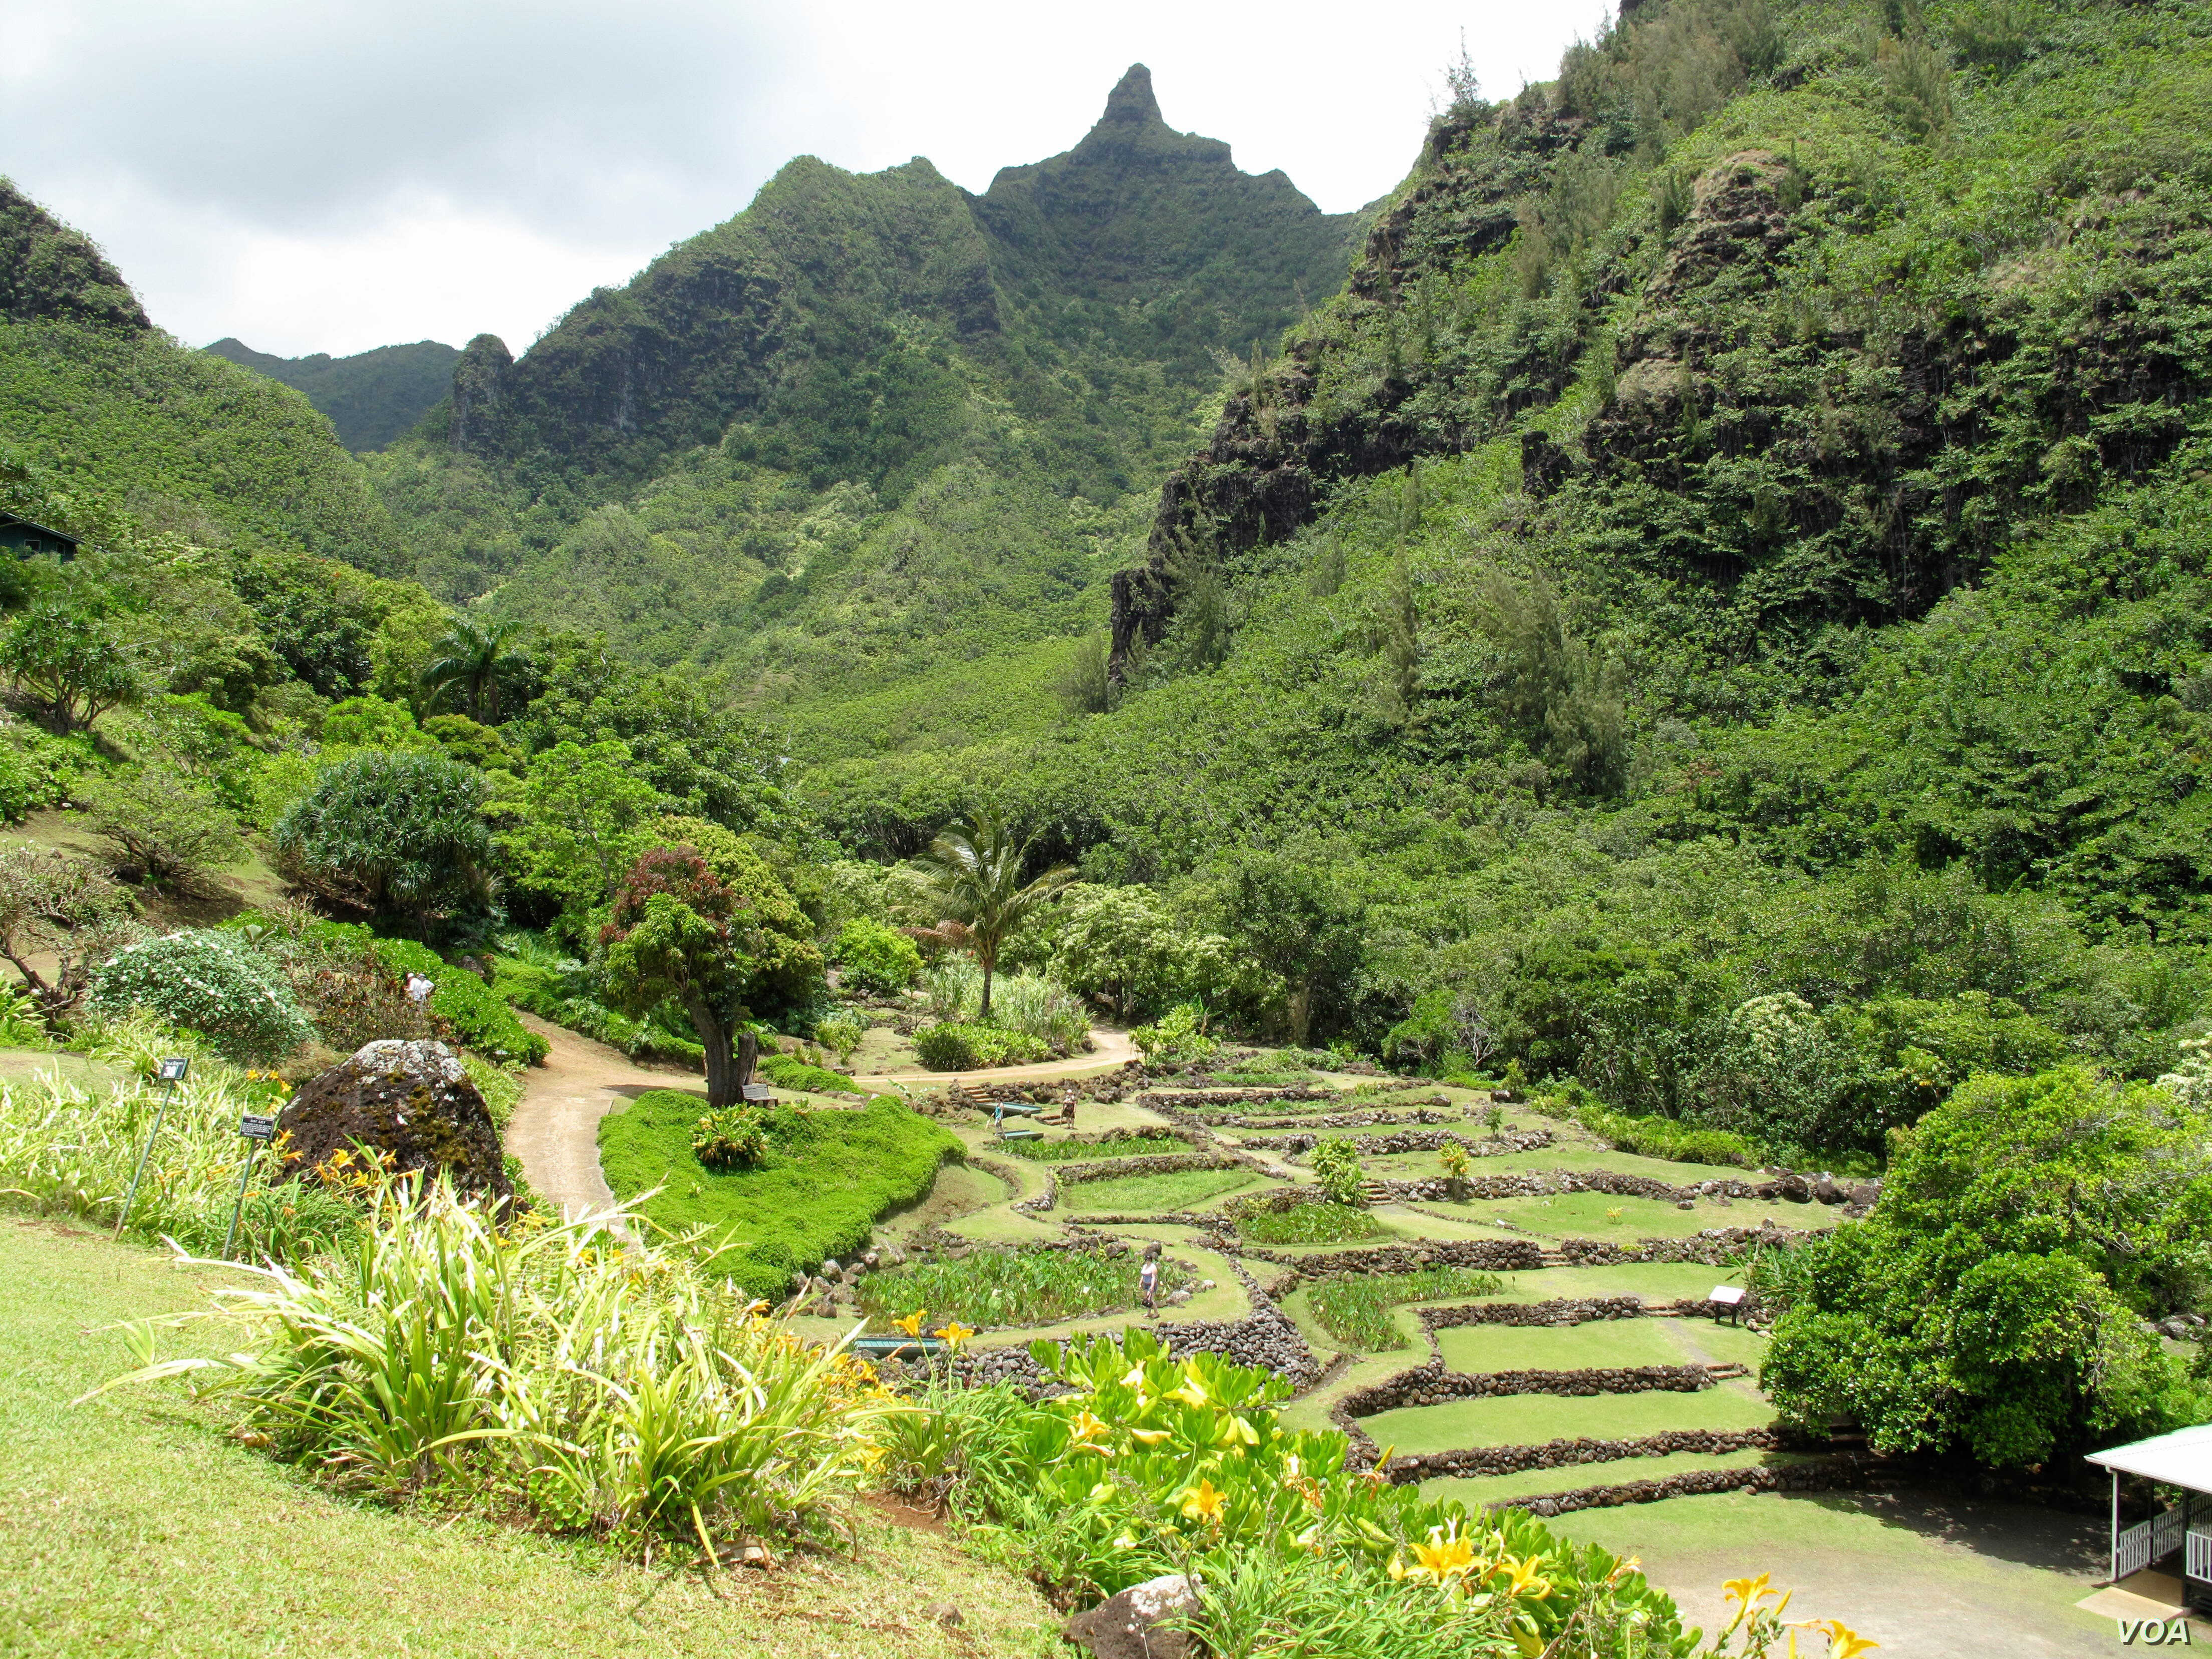 Ancient Hawaiians built a system of terraces in the Limahuli valley to grow taro and other crops.